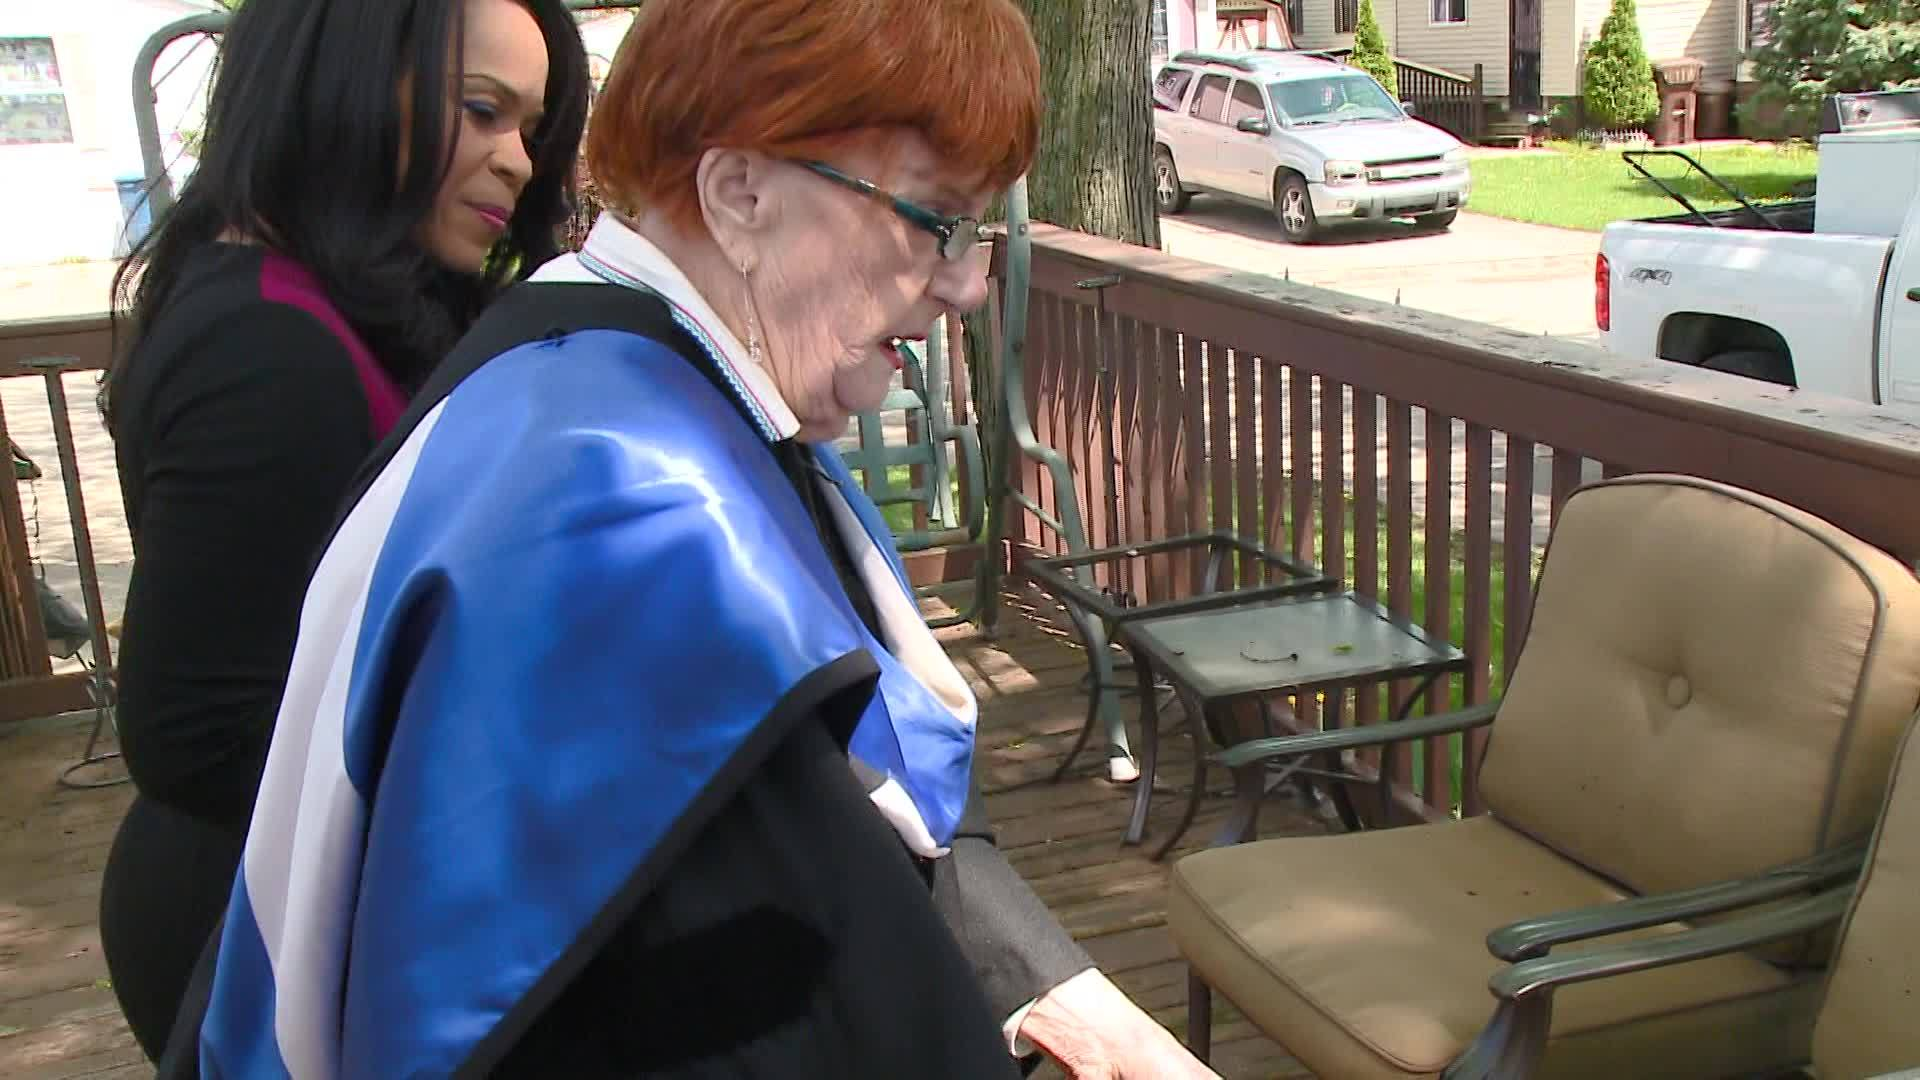 Dottie_s_honorary_degree_is_Positively_F_0_20190523040416